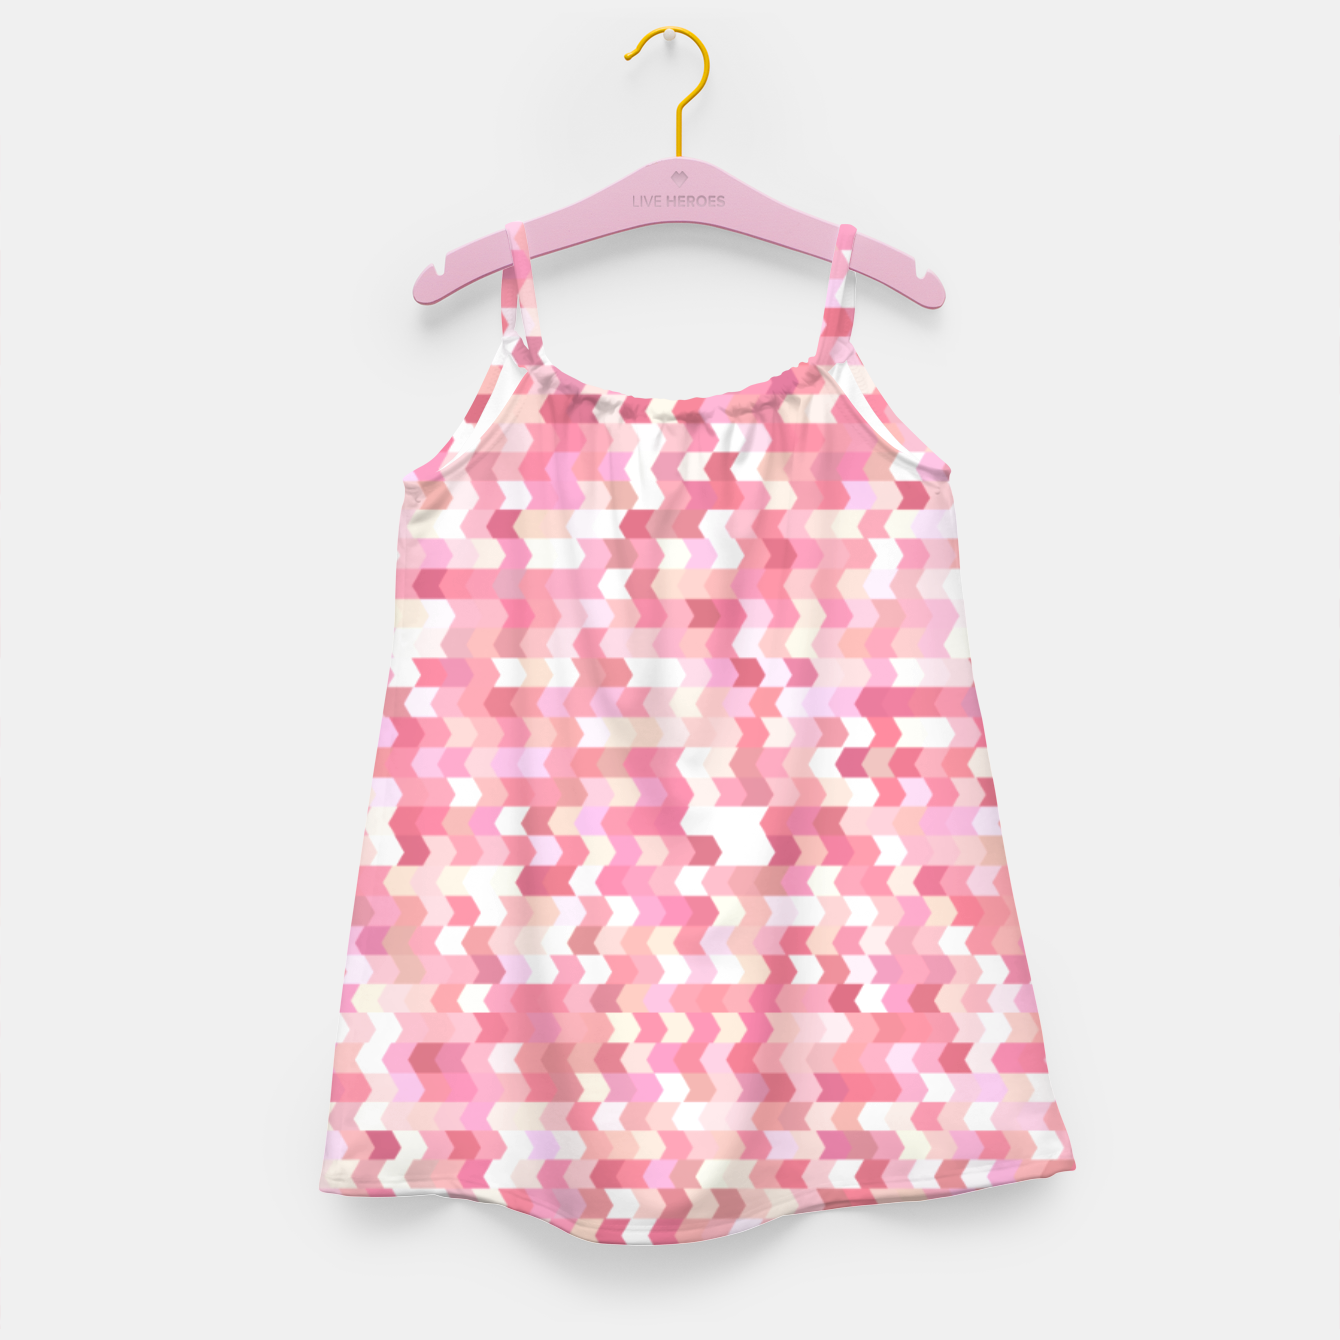 Foto Solid arrows in soft pink shades, cute baby flush pink pattern Girl's dress - Live Heroes